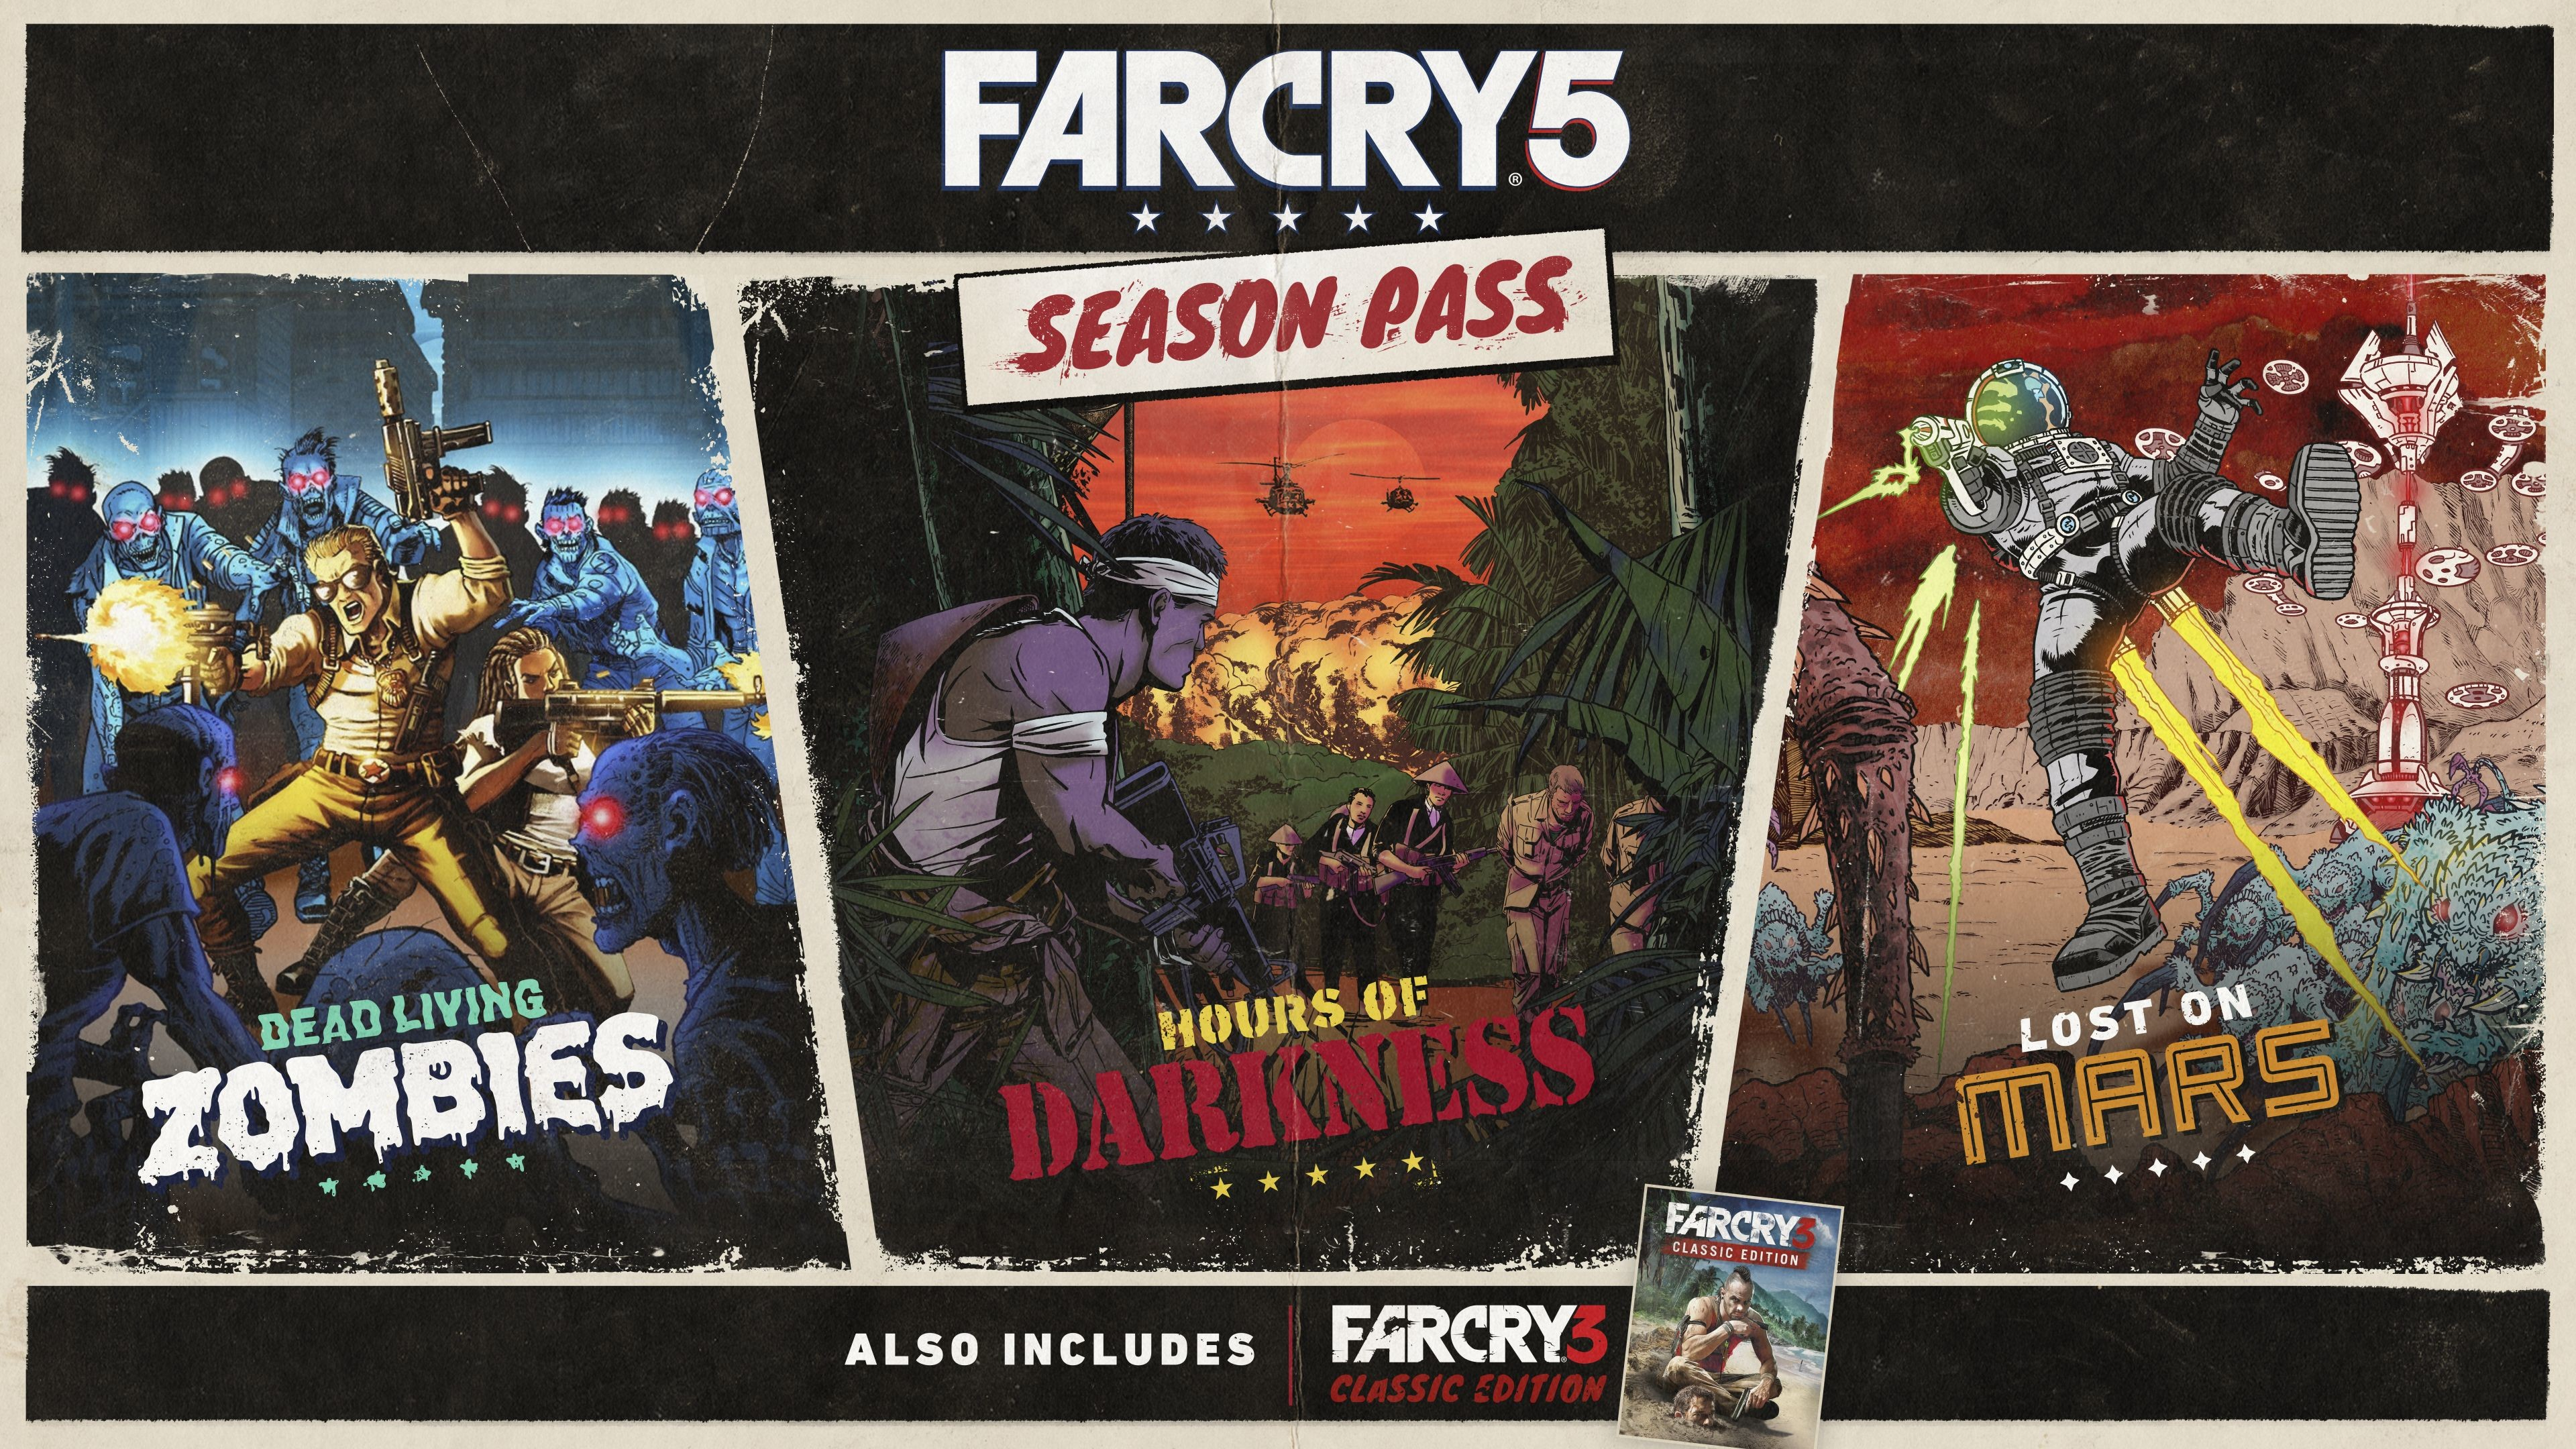 Far Cry 5 season pass details, Far Cry 3 Classic Edition announced